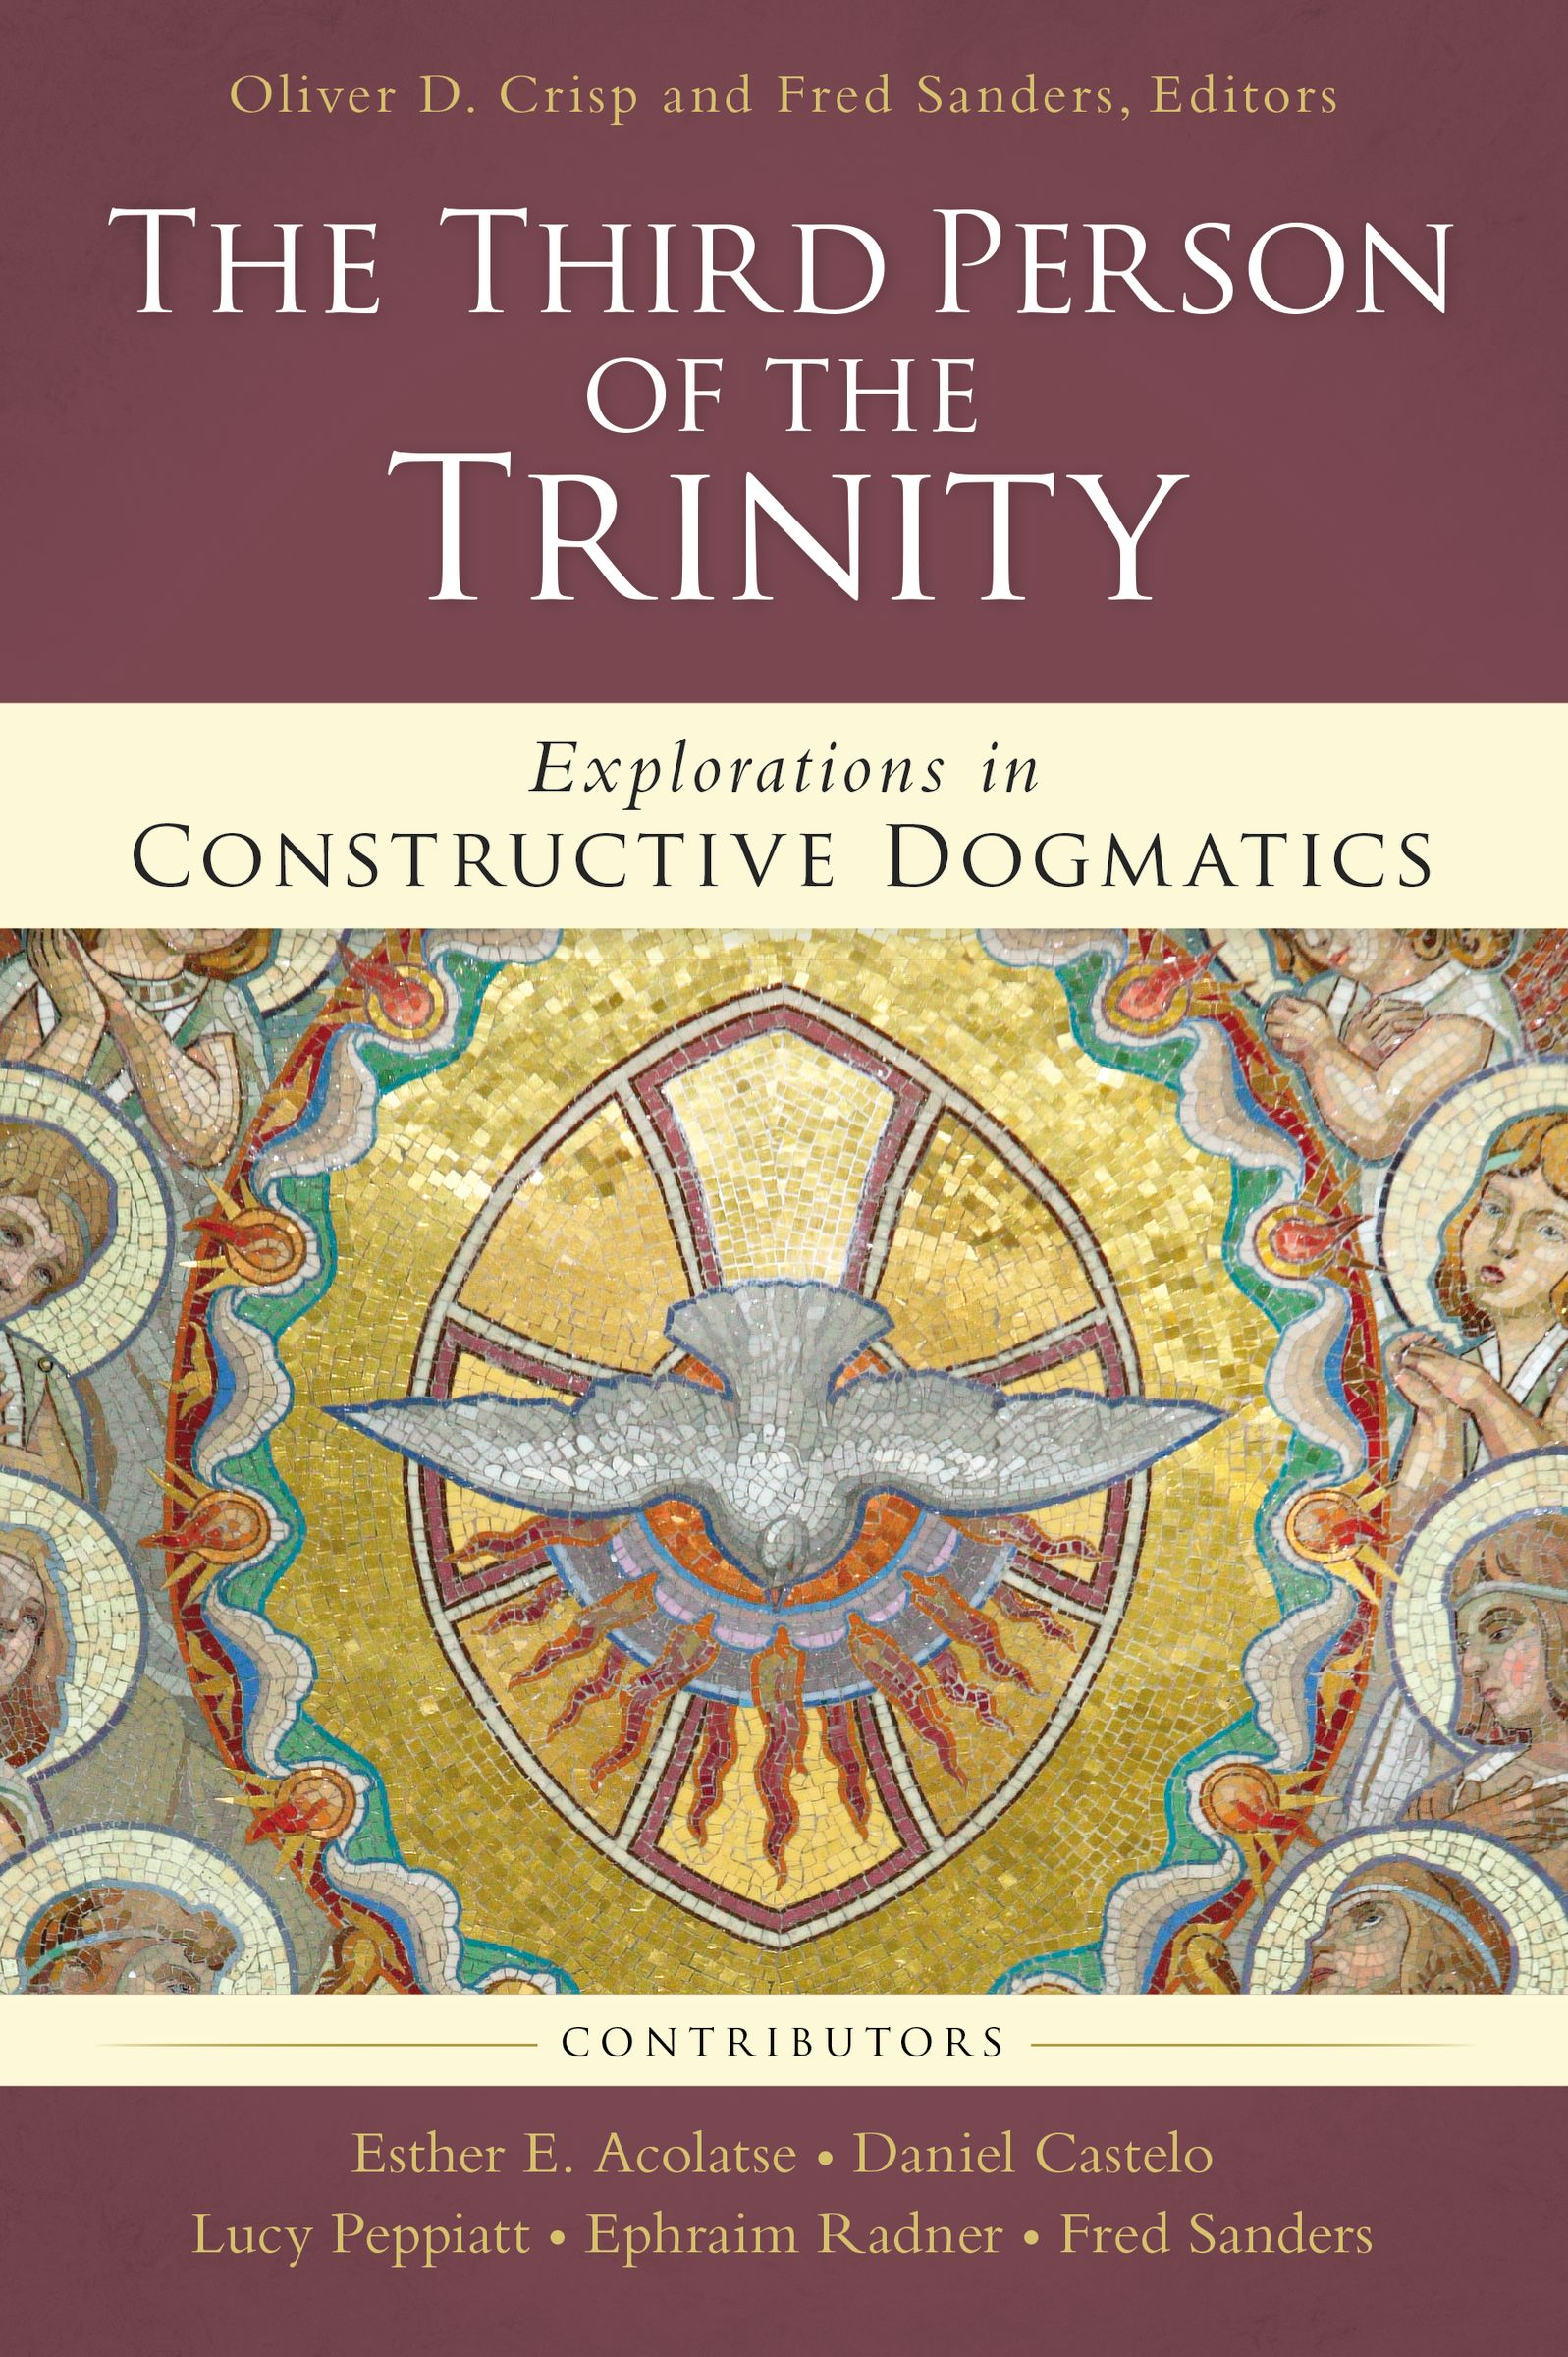 [PDF] [EPUB] The Third Person of the Trinity: Explorations in Constructive Dogmatics Download by Oliver D Crisp